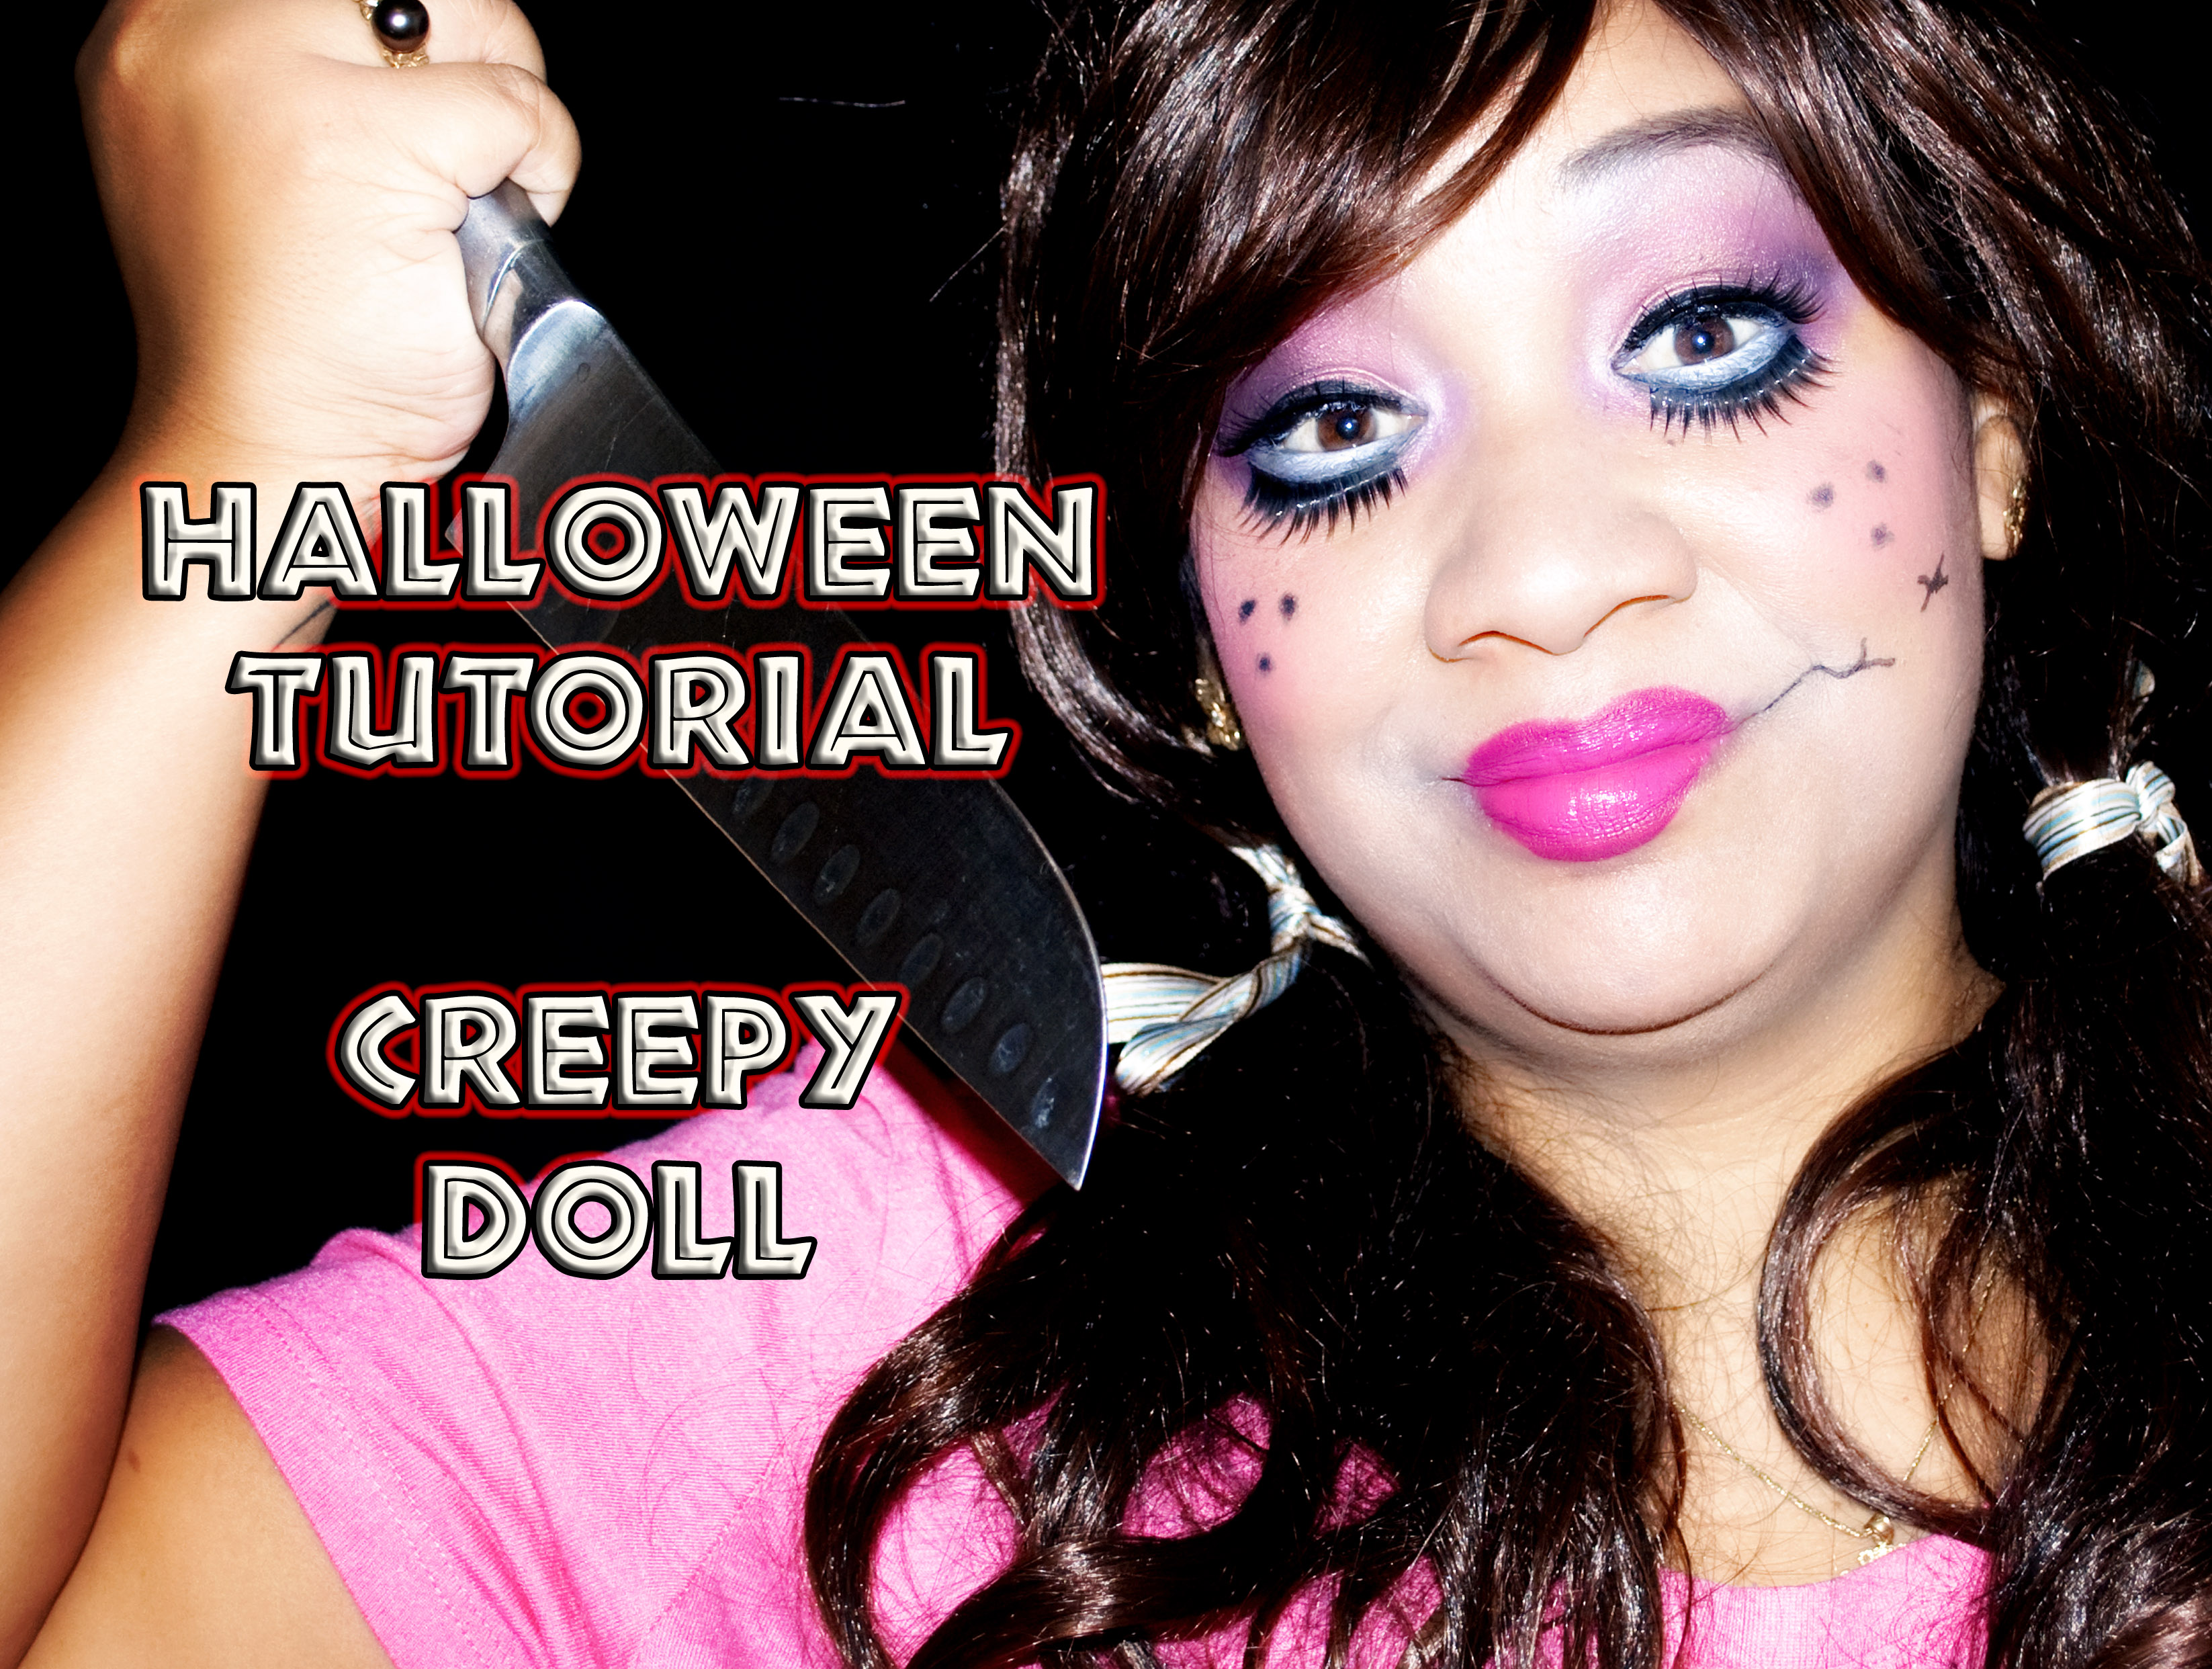 HALLOWEEN TUTORIAL – Creepy Doll Makeup Tutorial